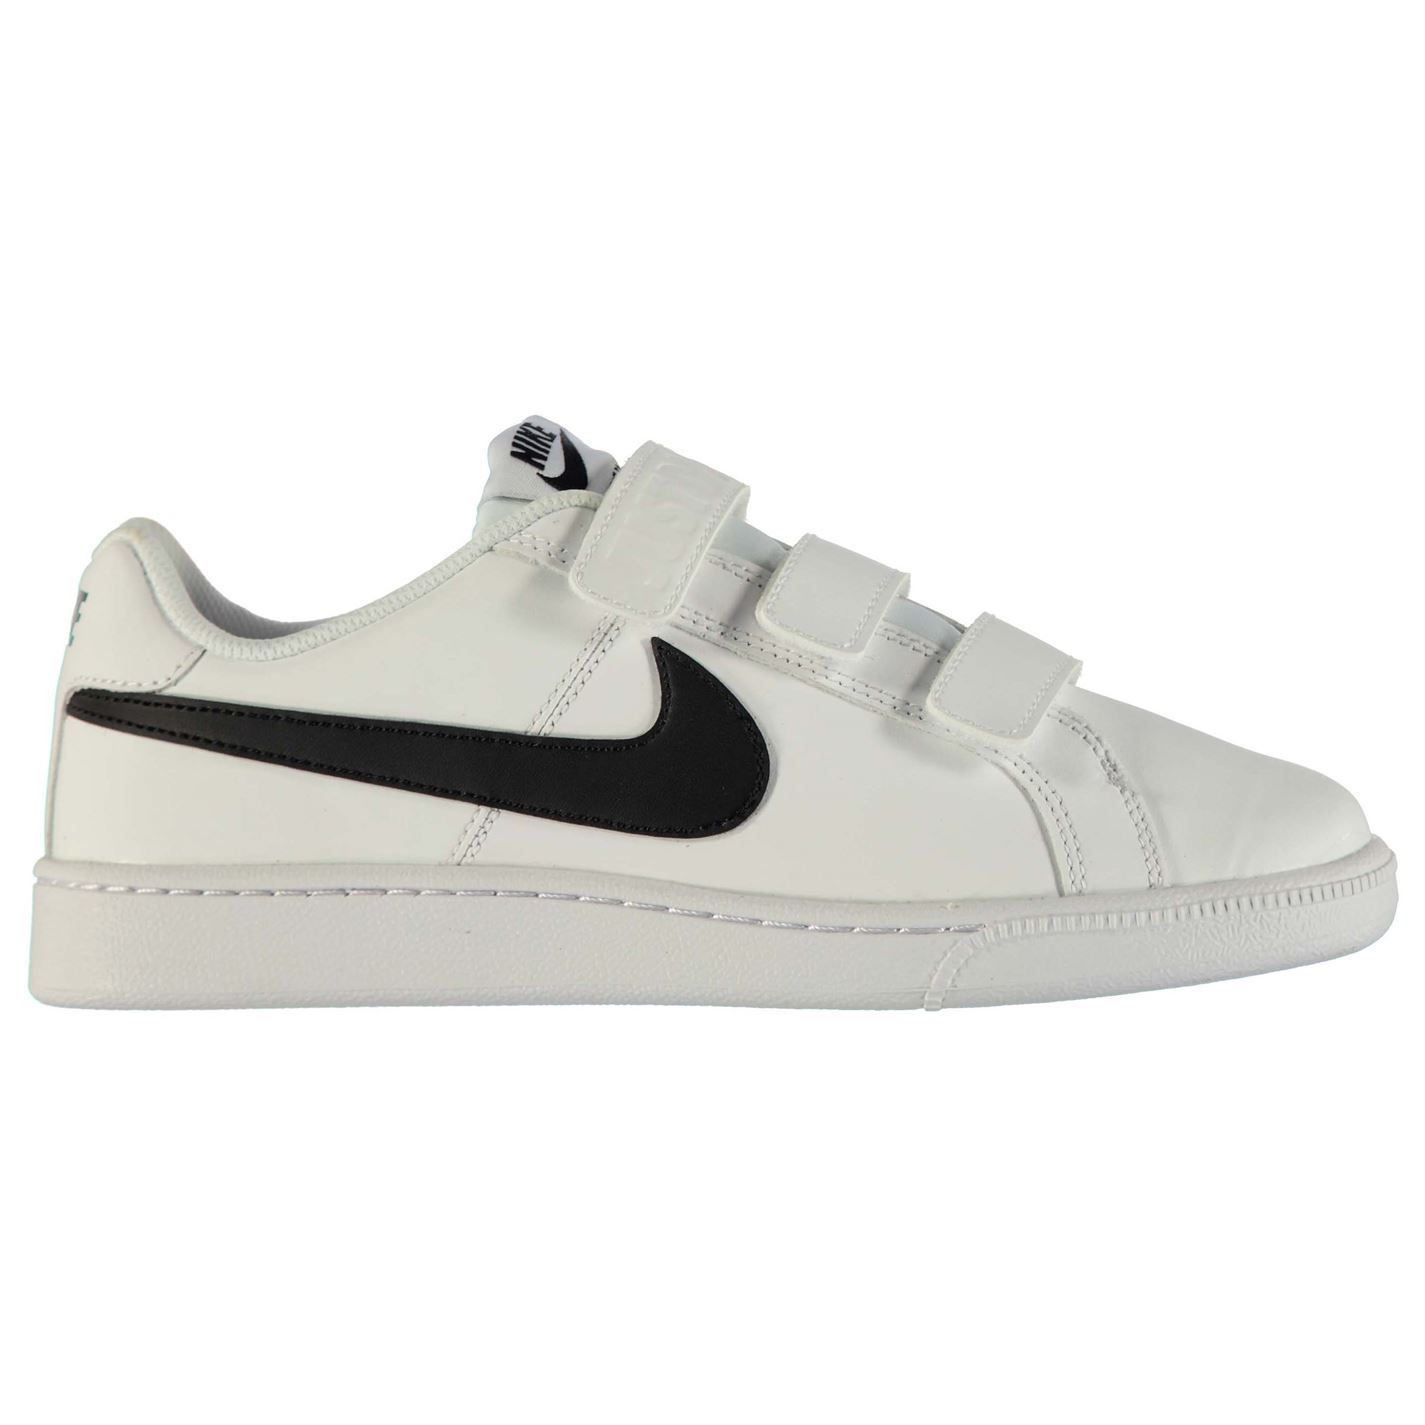 ... Nike Court Royale Trainers Mens White/Black Sports Shoes Sneakers  Footwear ...